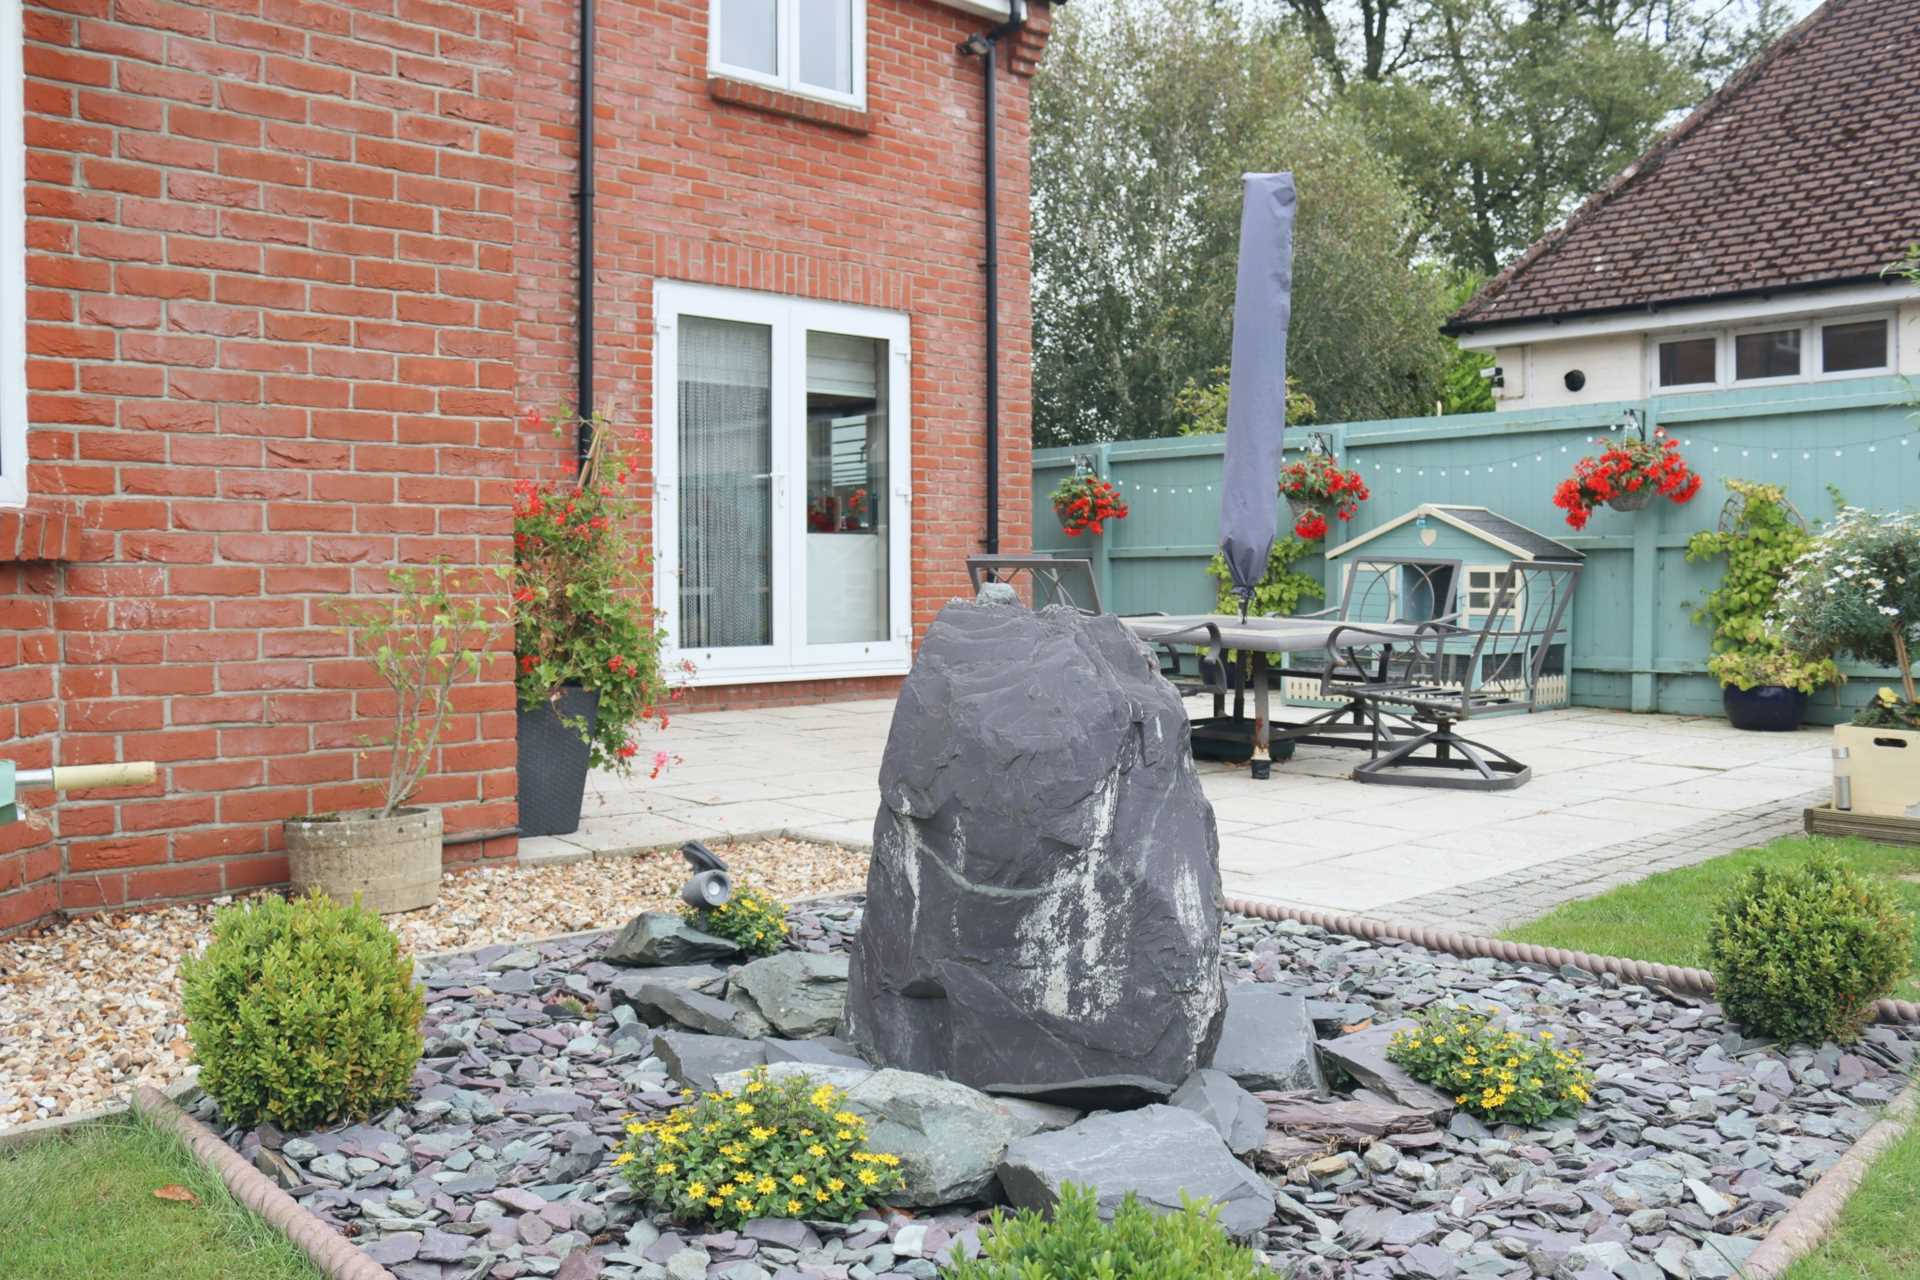 4 bed detached house for sale in Maple Vale, Whatcombe Lane, Winterborne Whitechurch, Blandford Forum 17